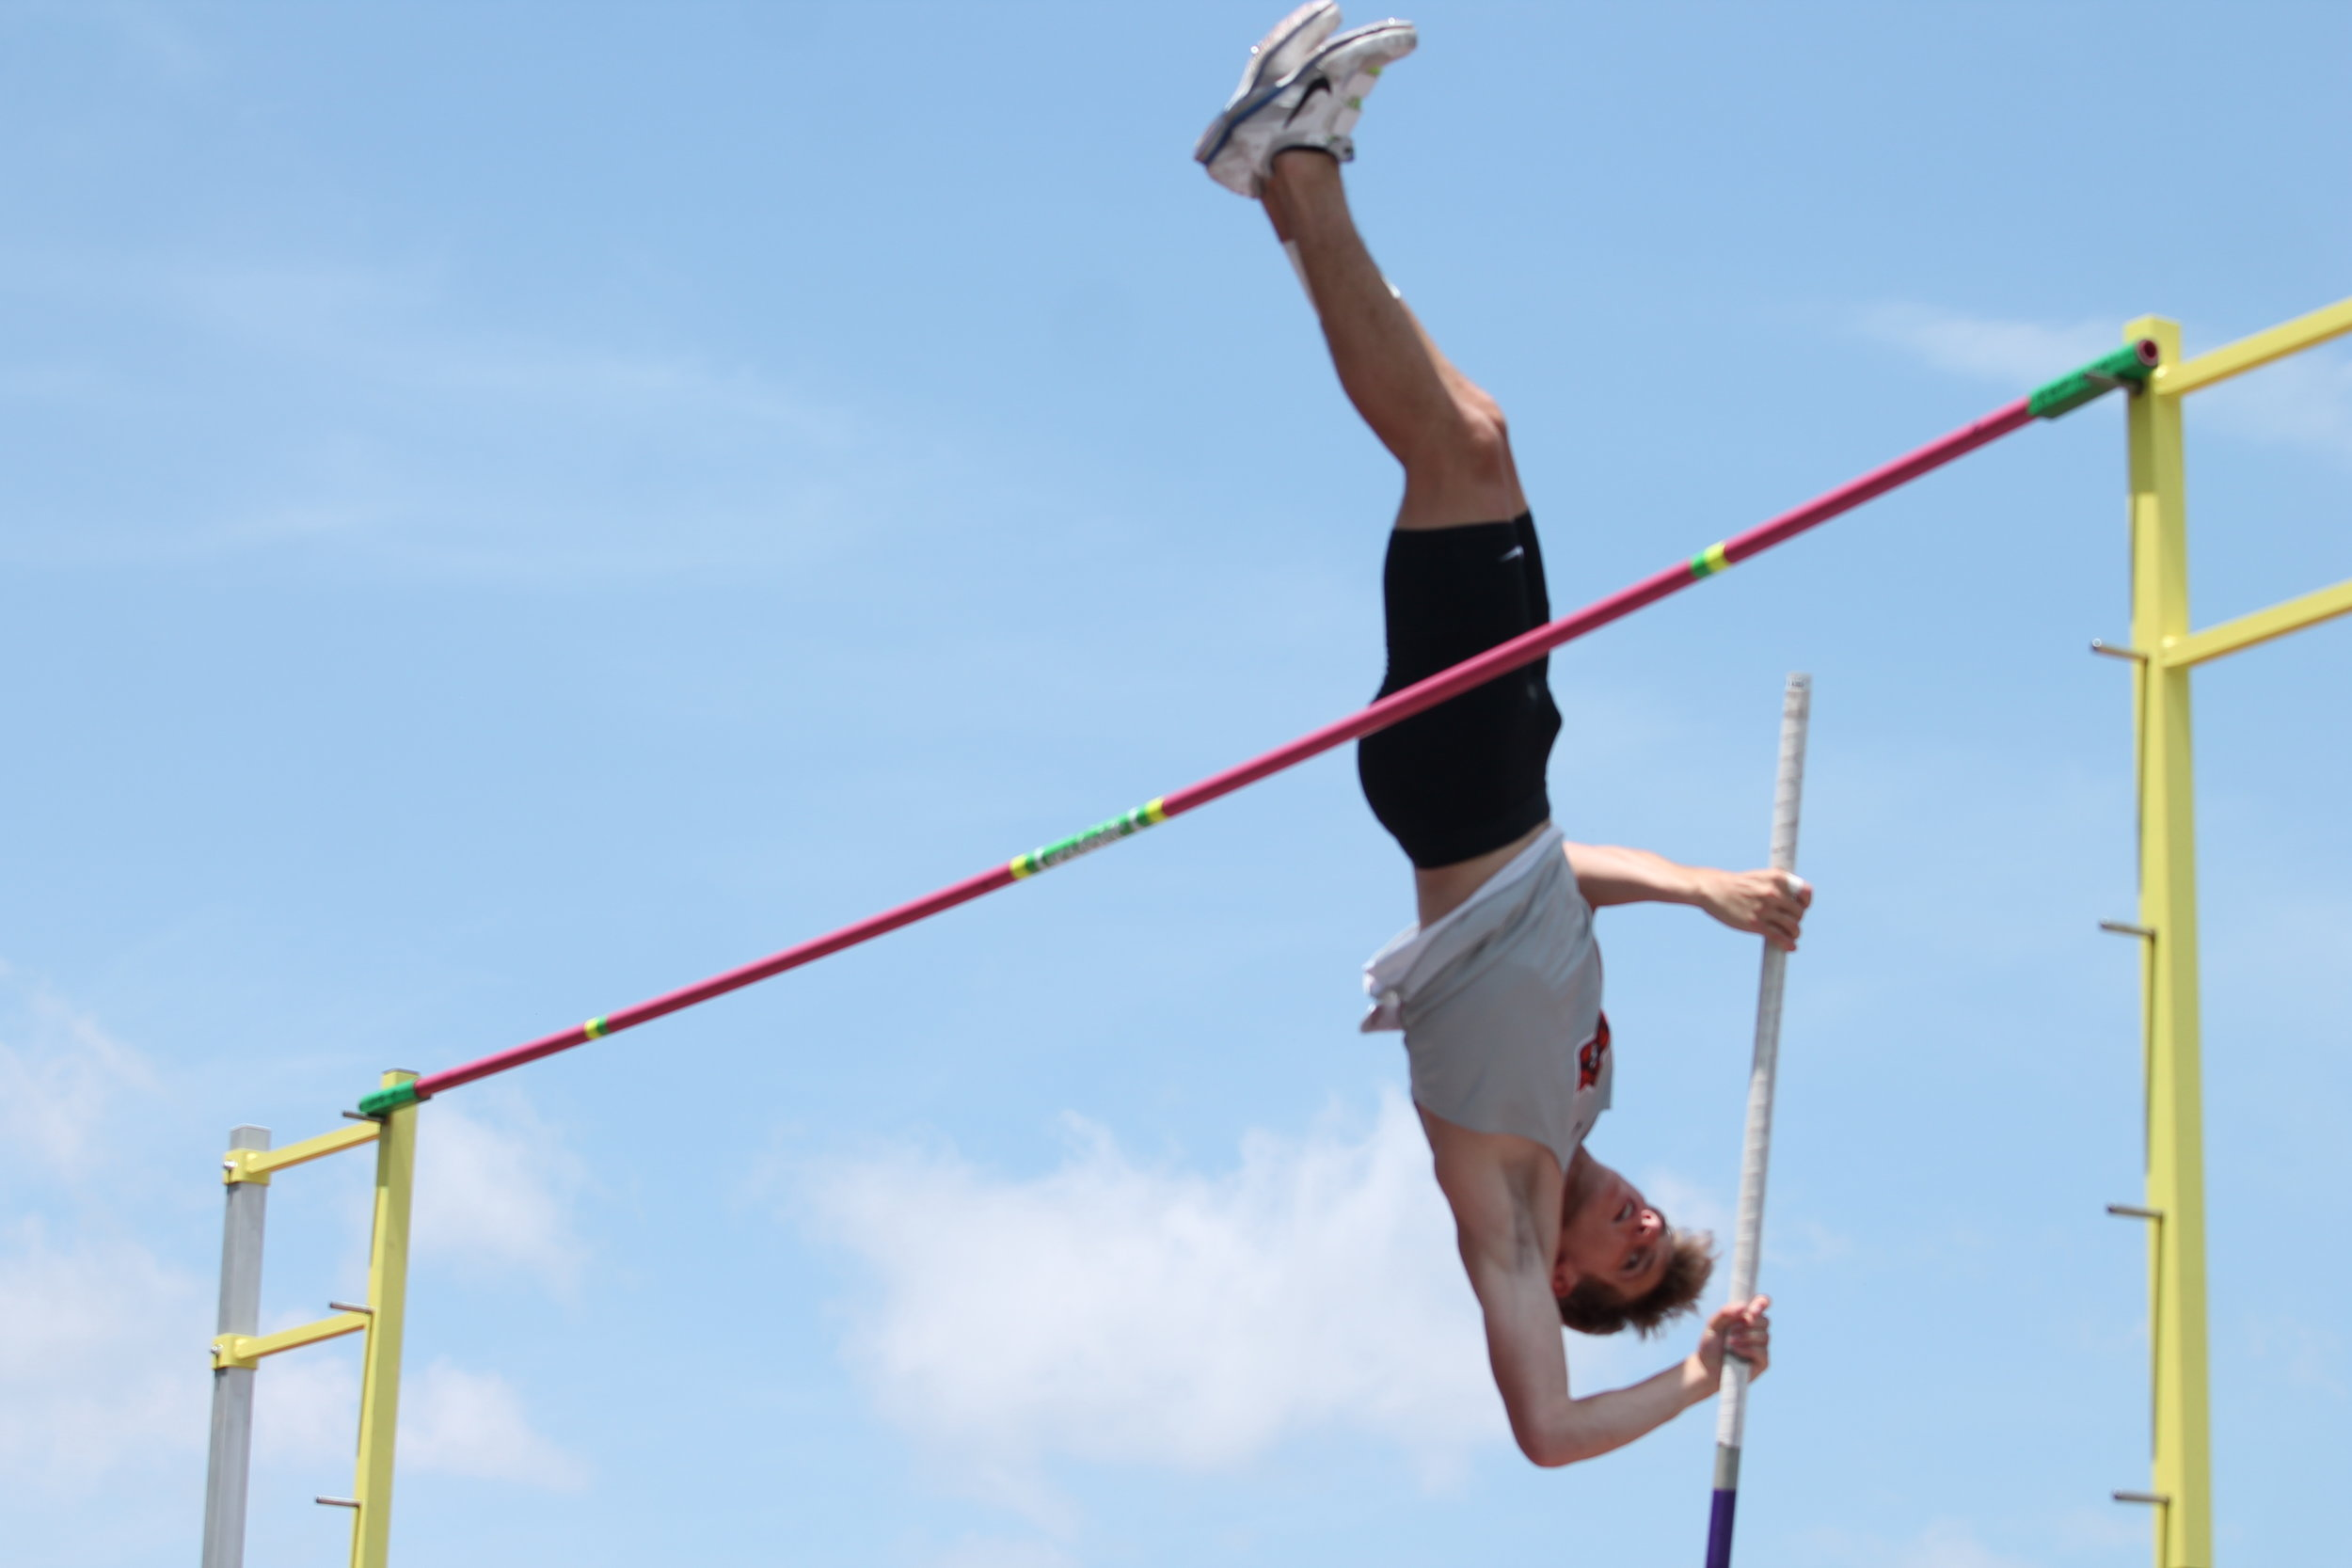 BREANNA CHEADLE/Special to the Citizen  Platte County's Jacob Laures jumped a school record 15 feet, 6 inches in the pole vault on Saturday, May 25 at the Class 4 State Track and Field Championships held at Washington High School in Washington, Mo.